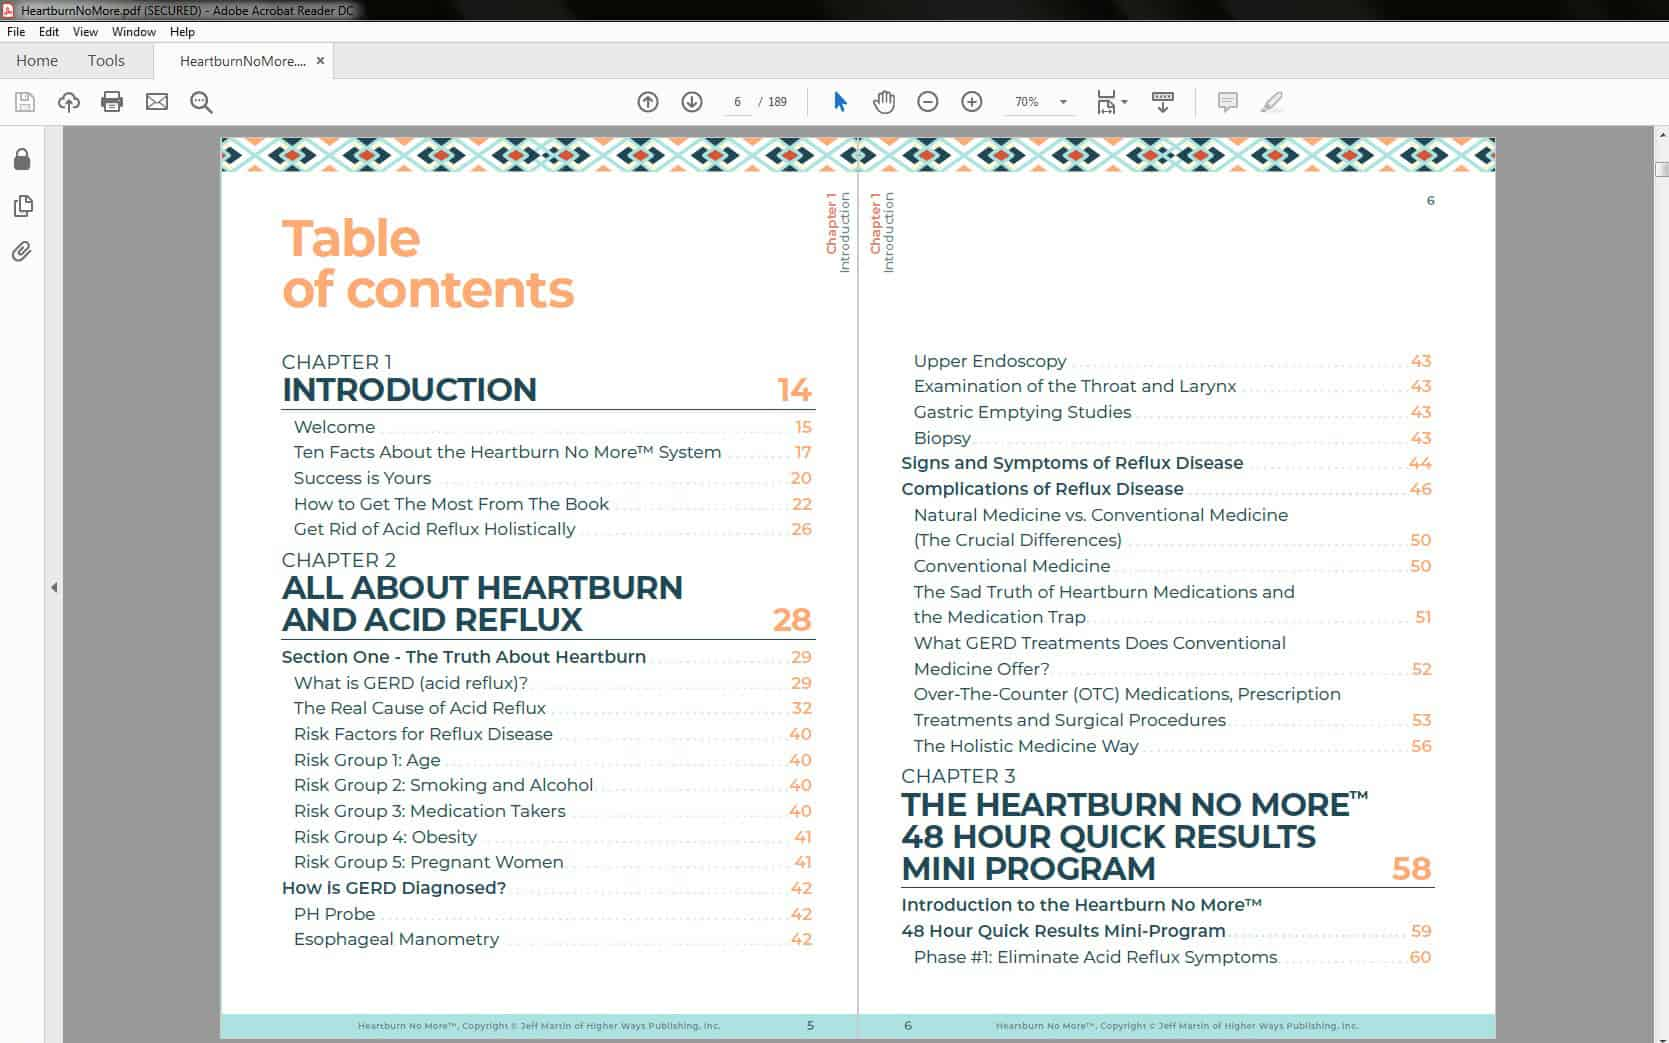 Heartburn No More - Table of Contents